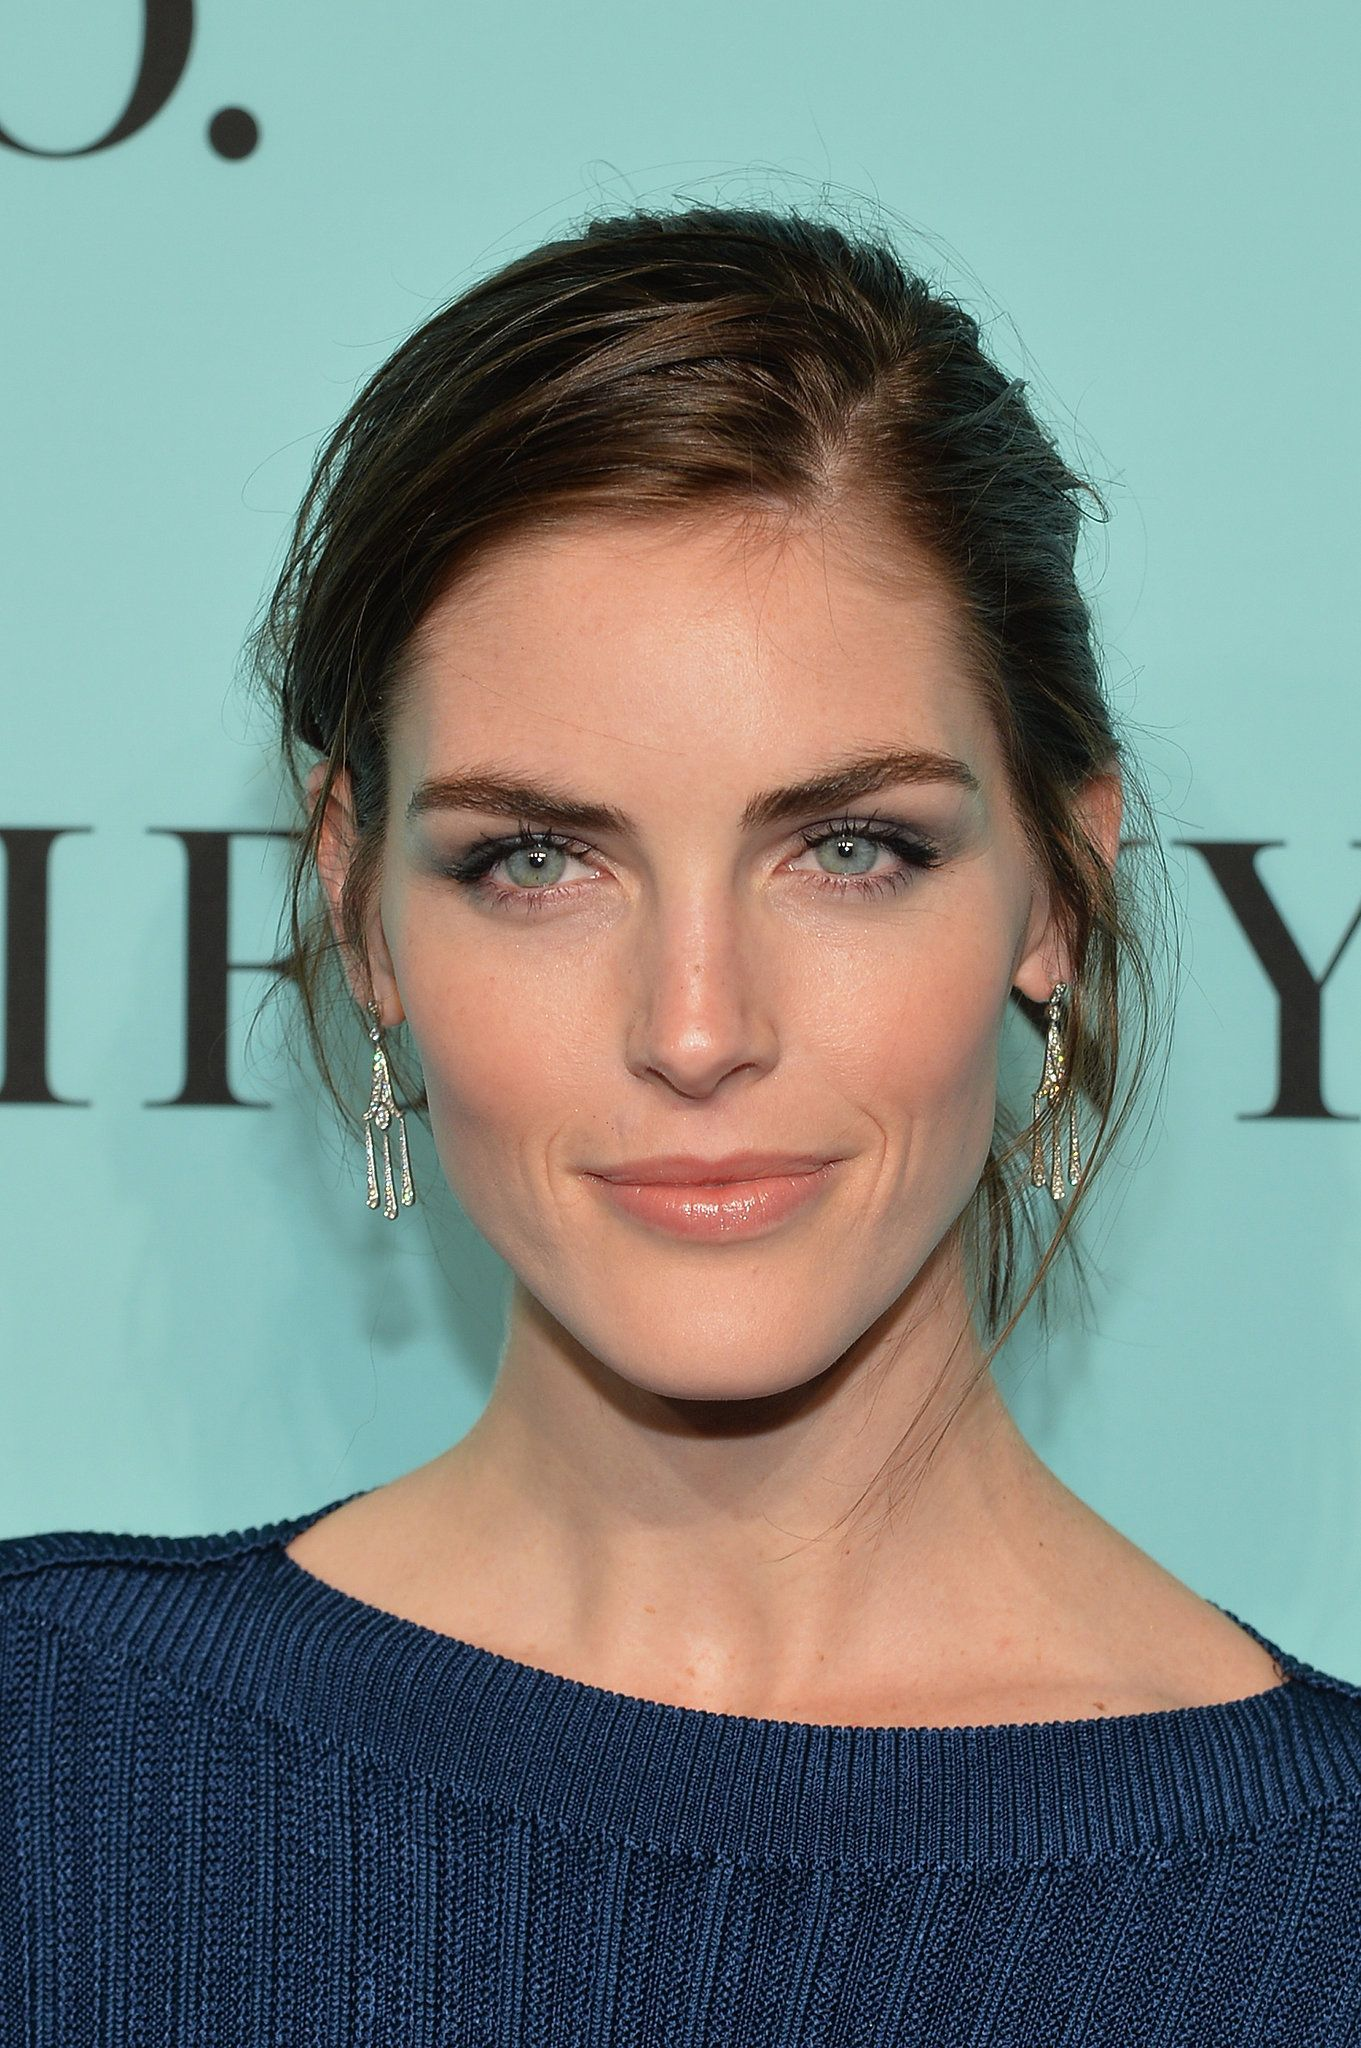 Pics Hilary Rhoda naked (35 photos), Pussy, Hot, Selfie, butt 2017